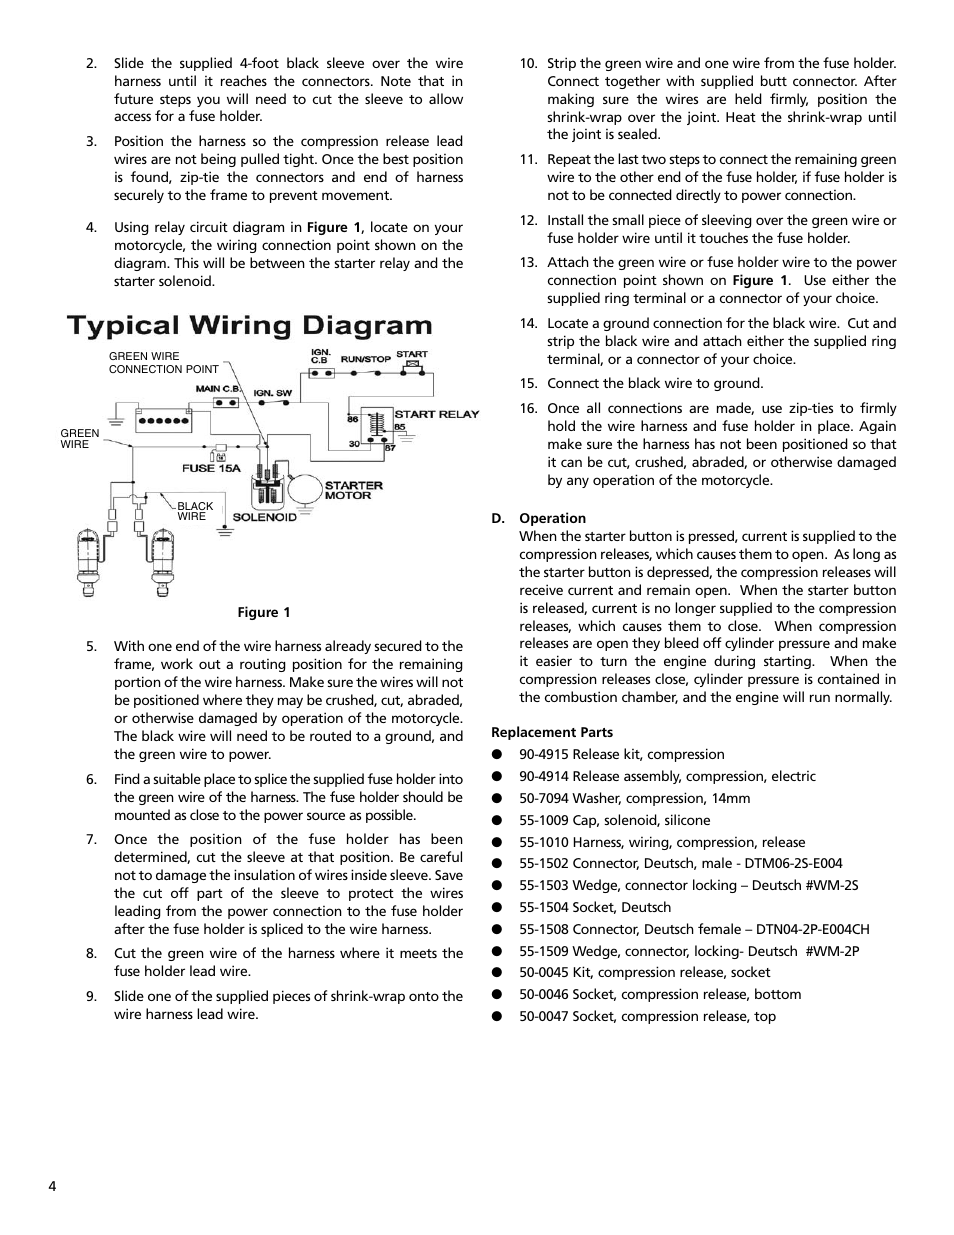 ss cycle electric compression release pn 90 4915 page4 s&s cycle electric compression release pn 90 4915 user manual s&s compression release wiring diagram at mr168.co